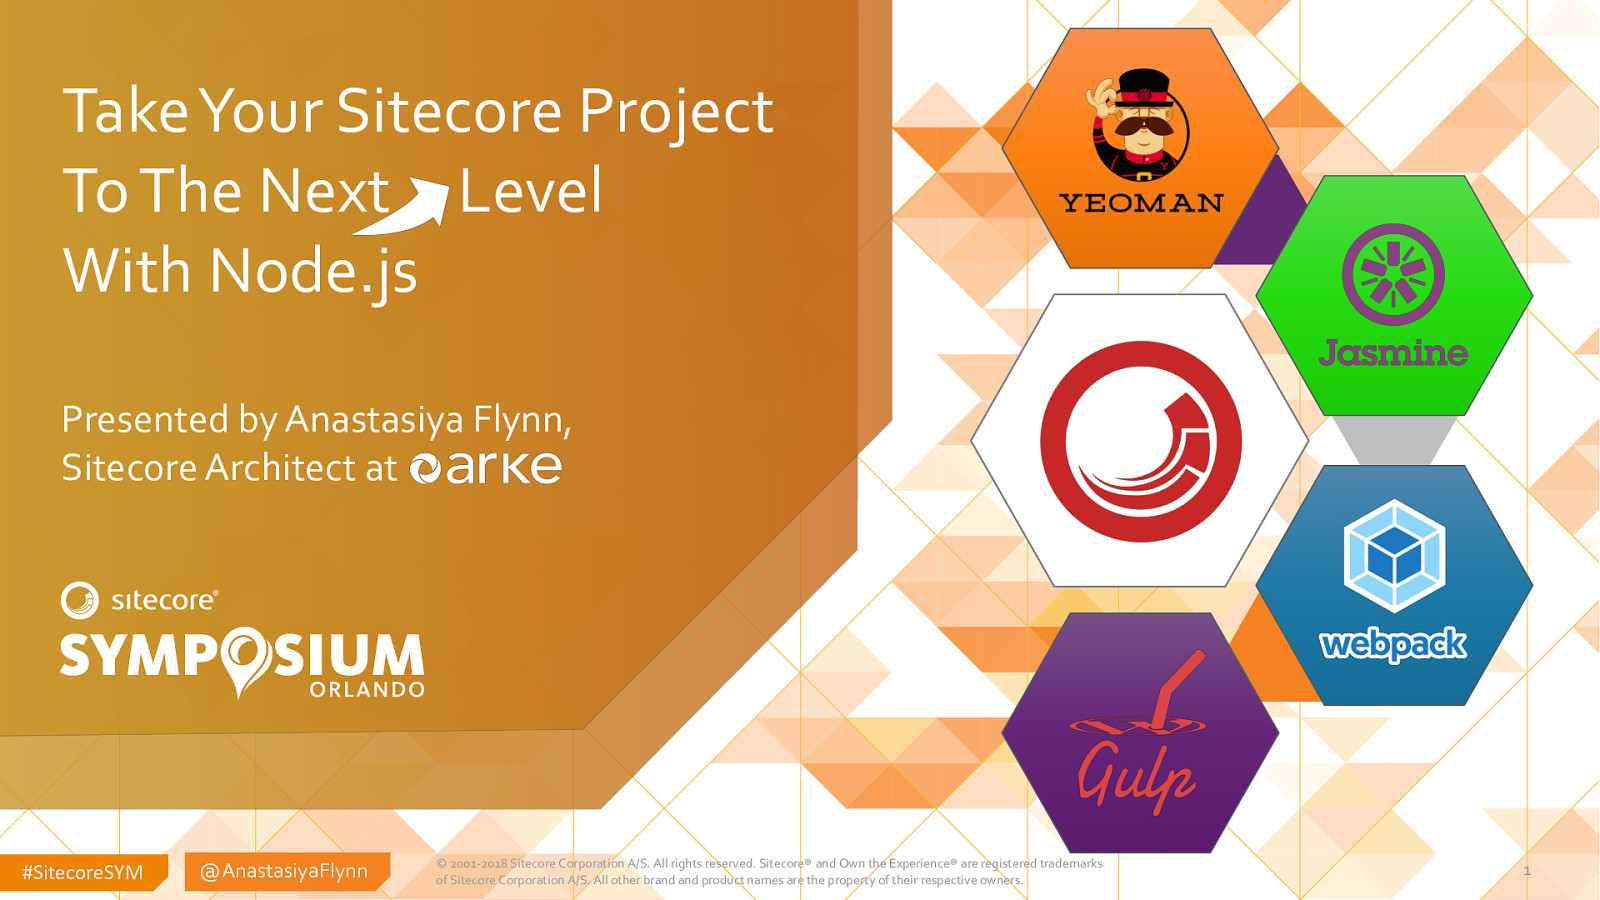 Take Your Sitecore Project To The Next LevelWith Node.js